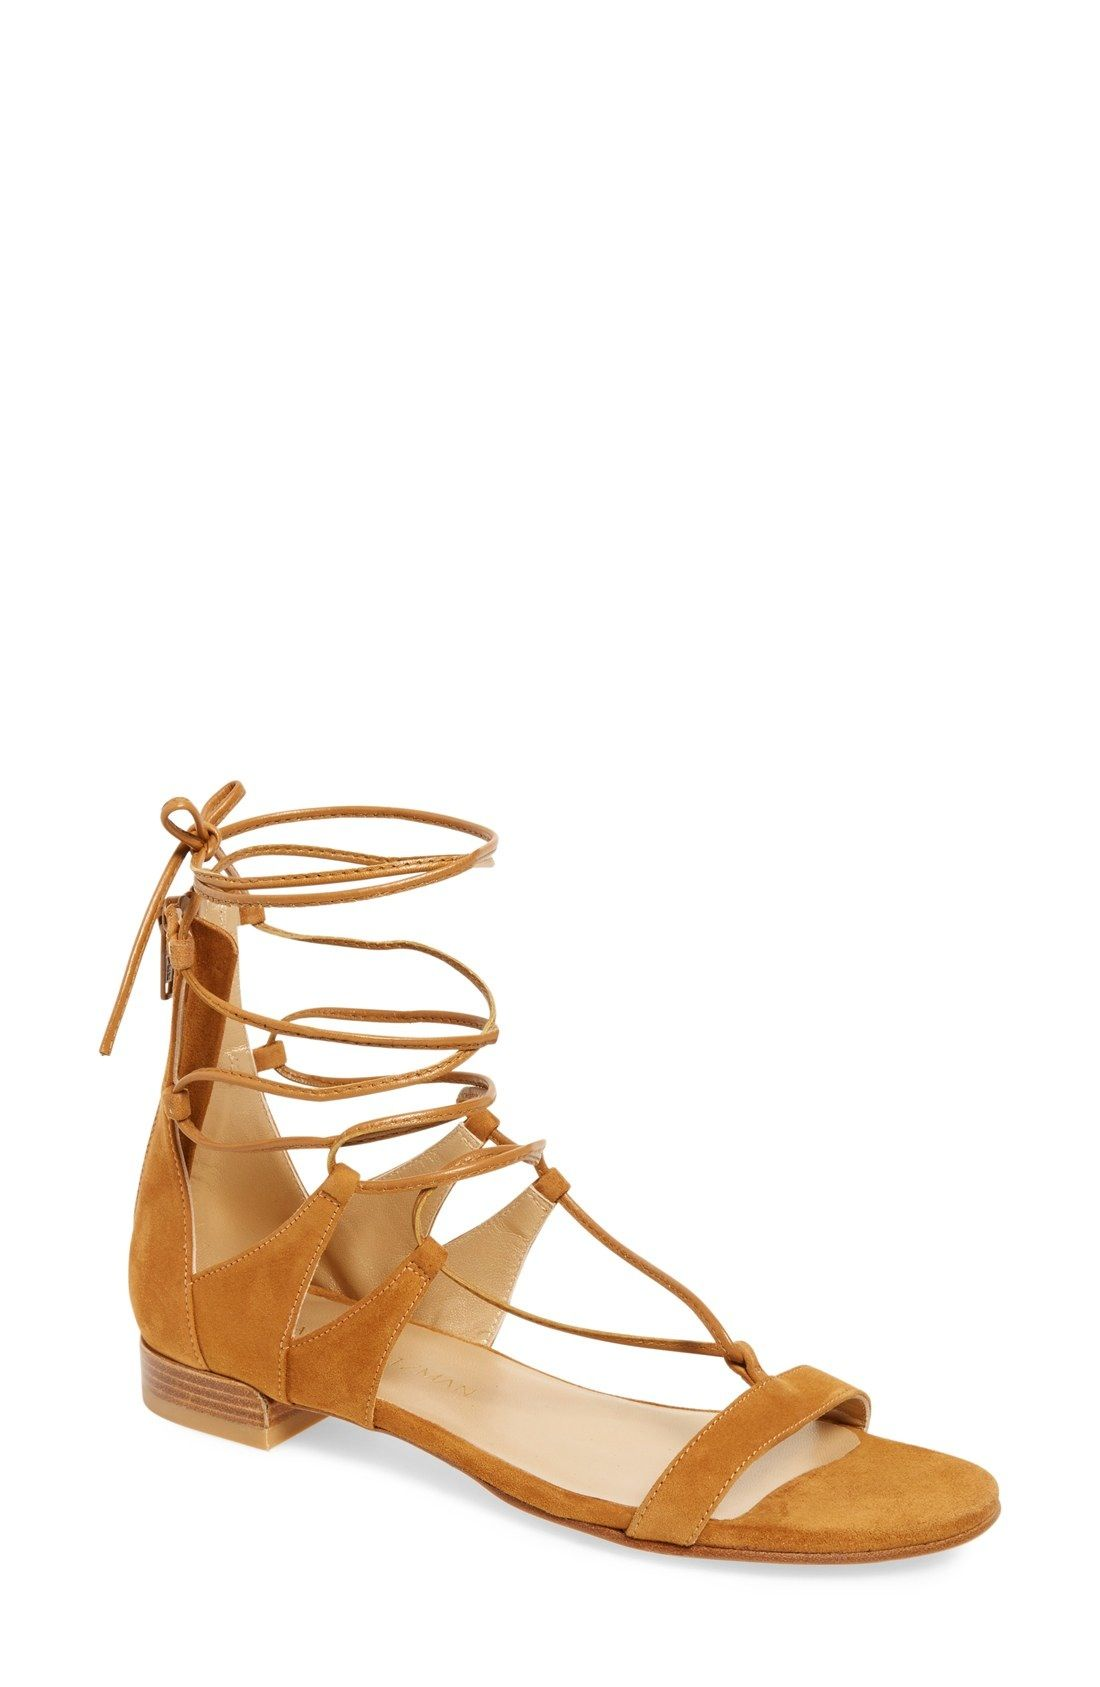 3386a3610468 Stuart Weitzman Tie-Up Sandal (Women) available at  Nordstrom ...